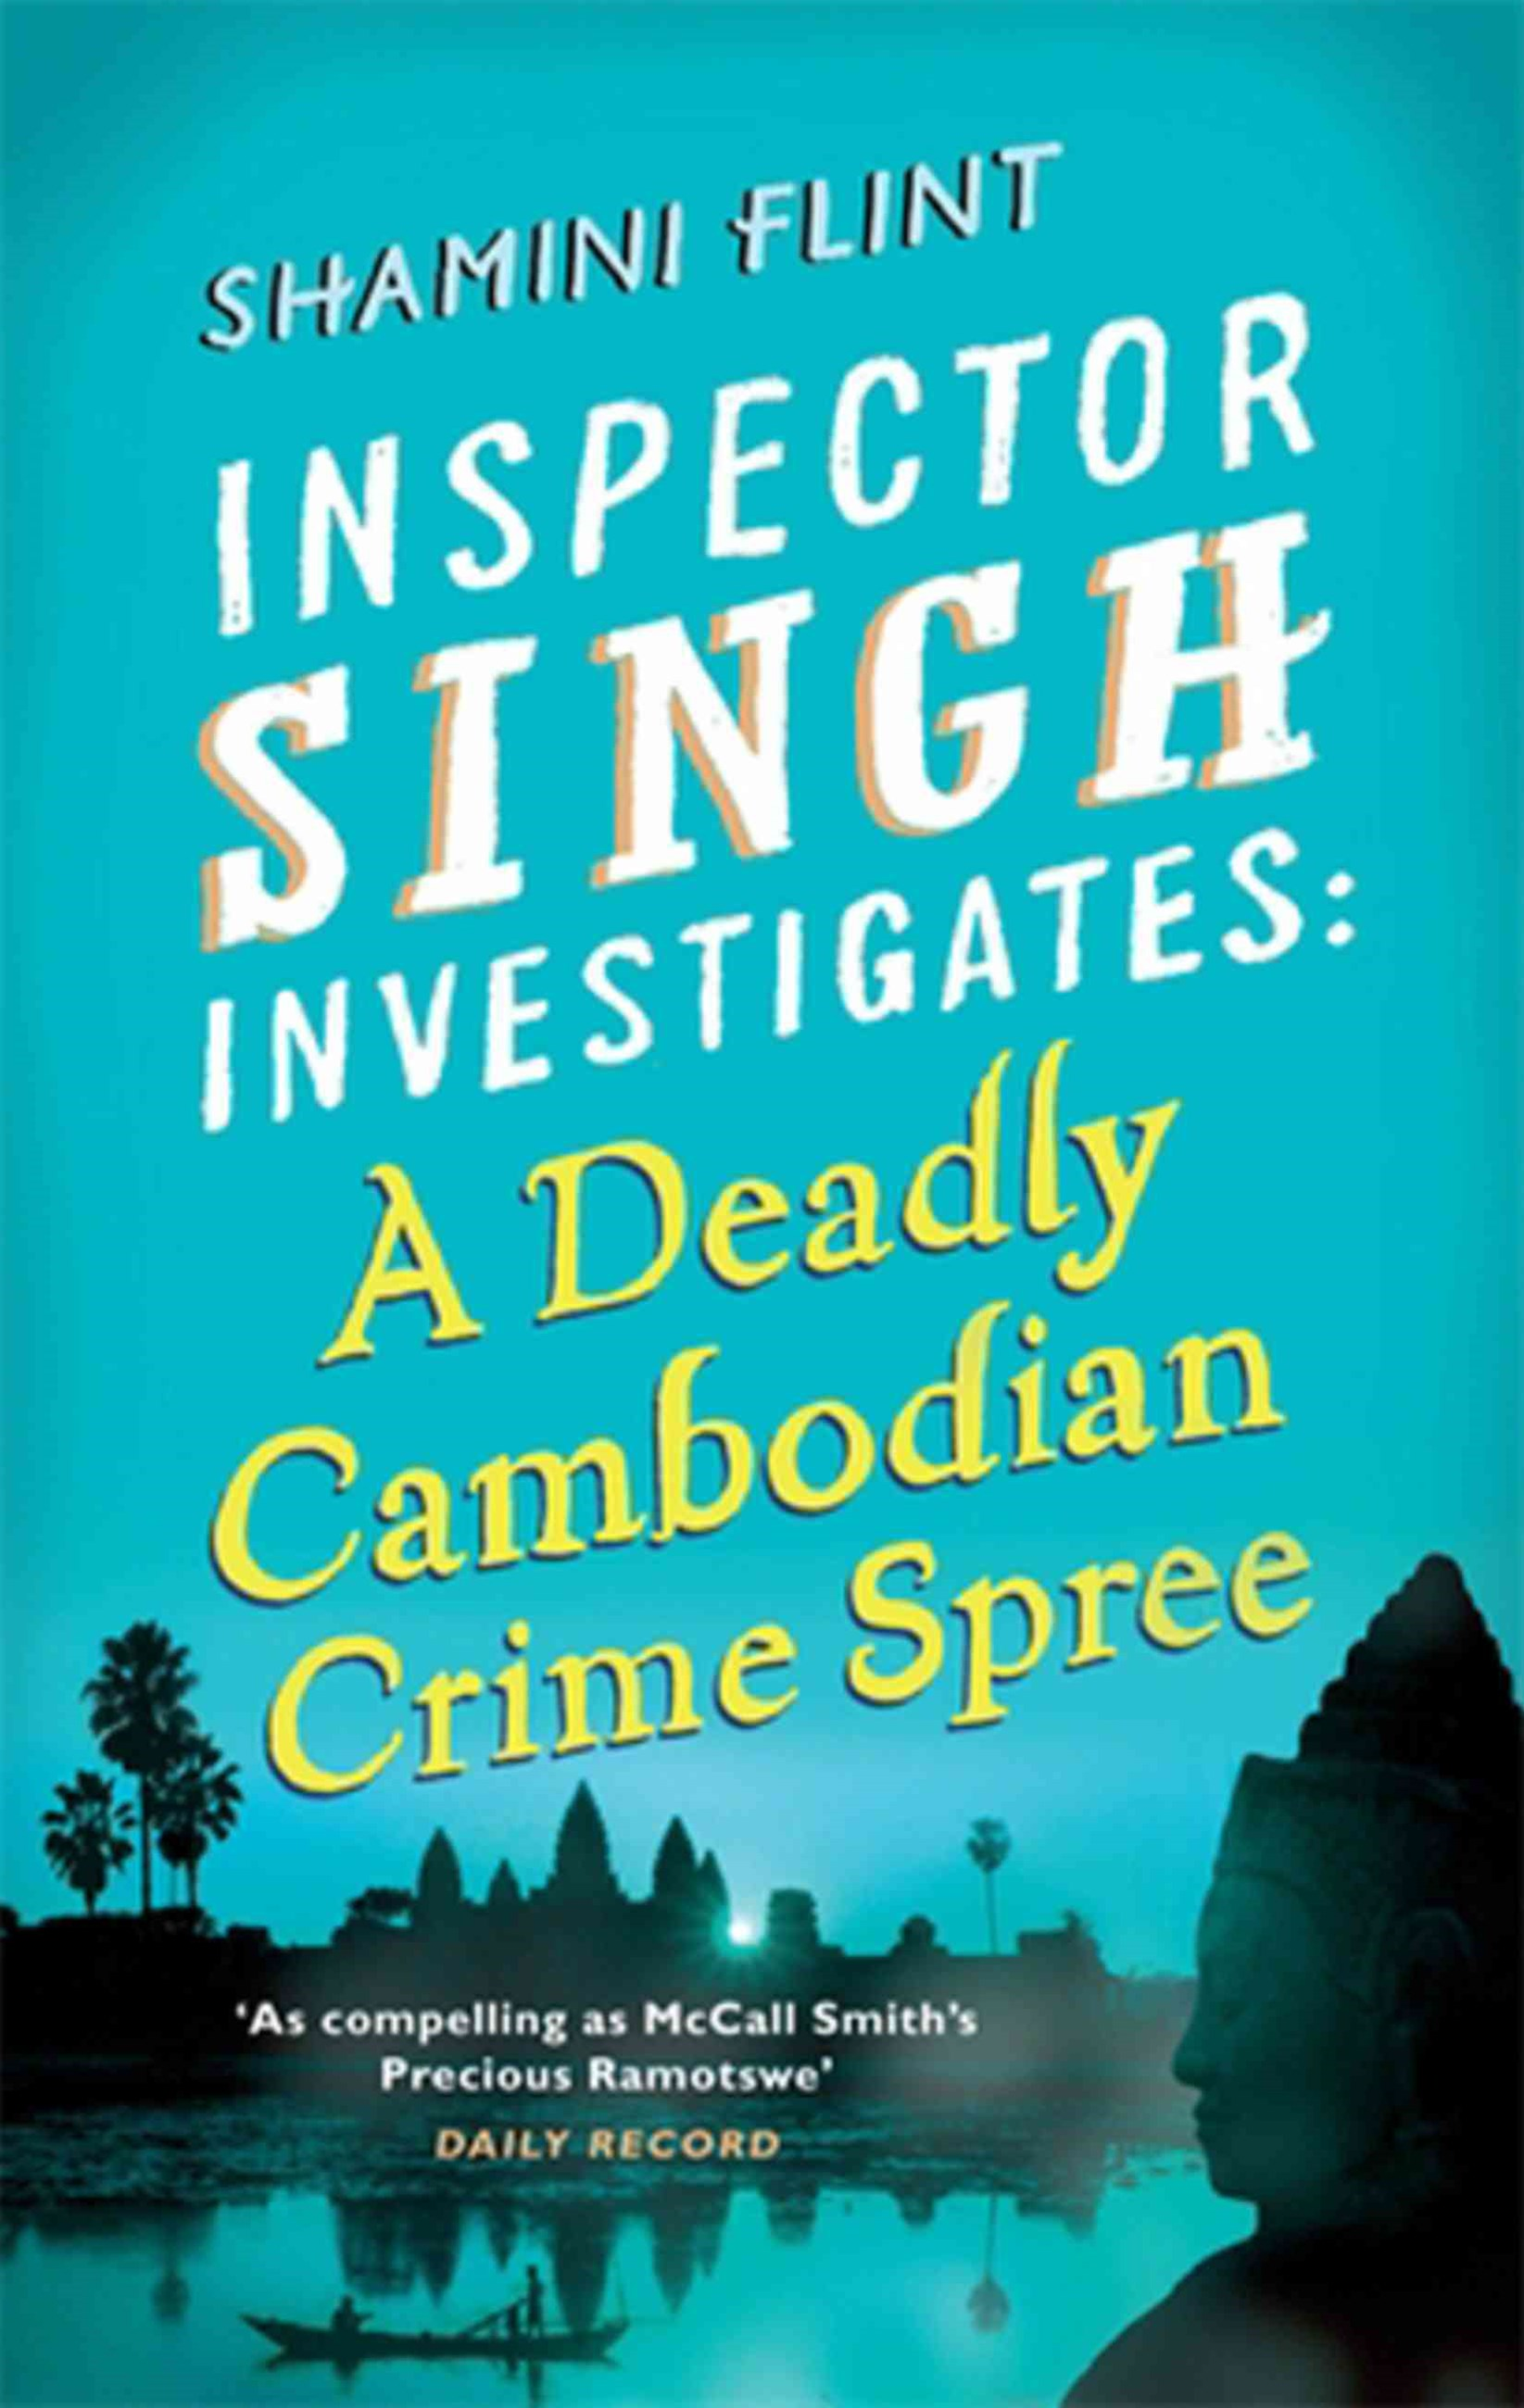 A Deadly Cambodian Crime Spree